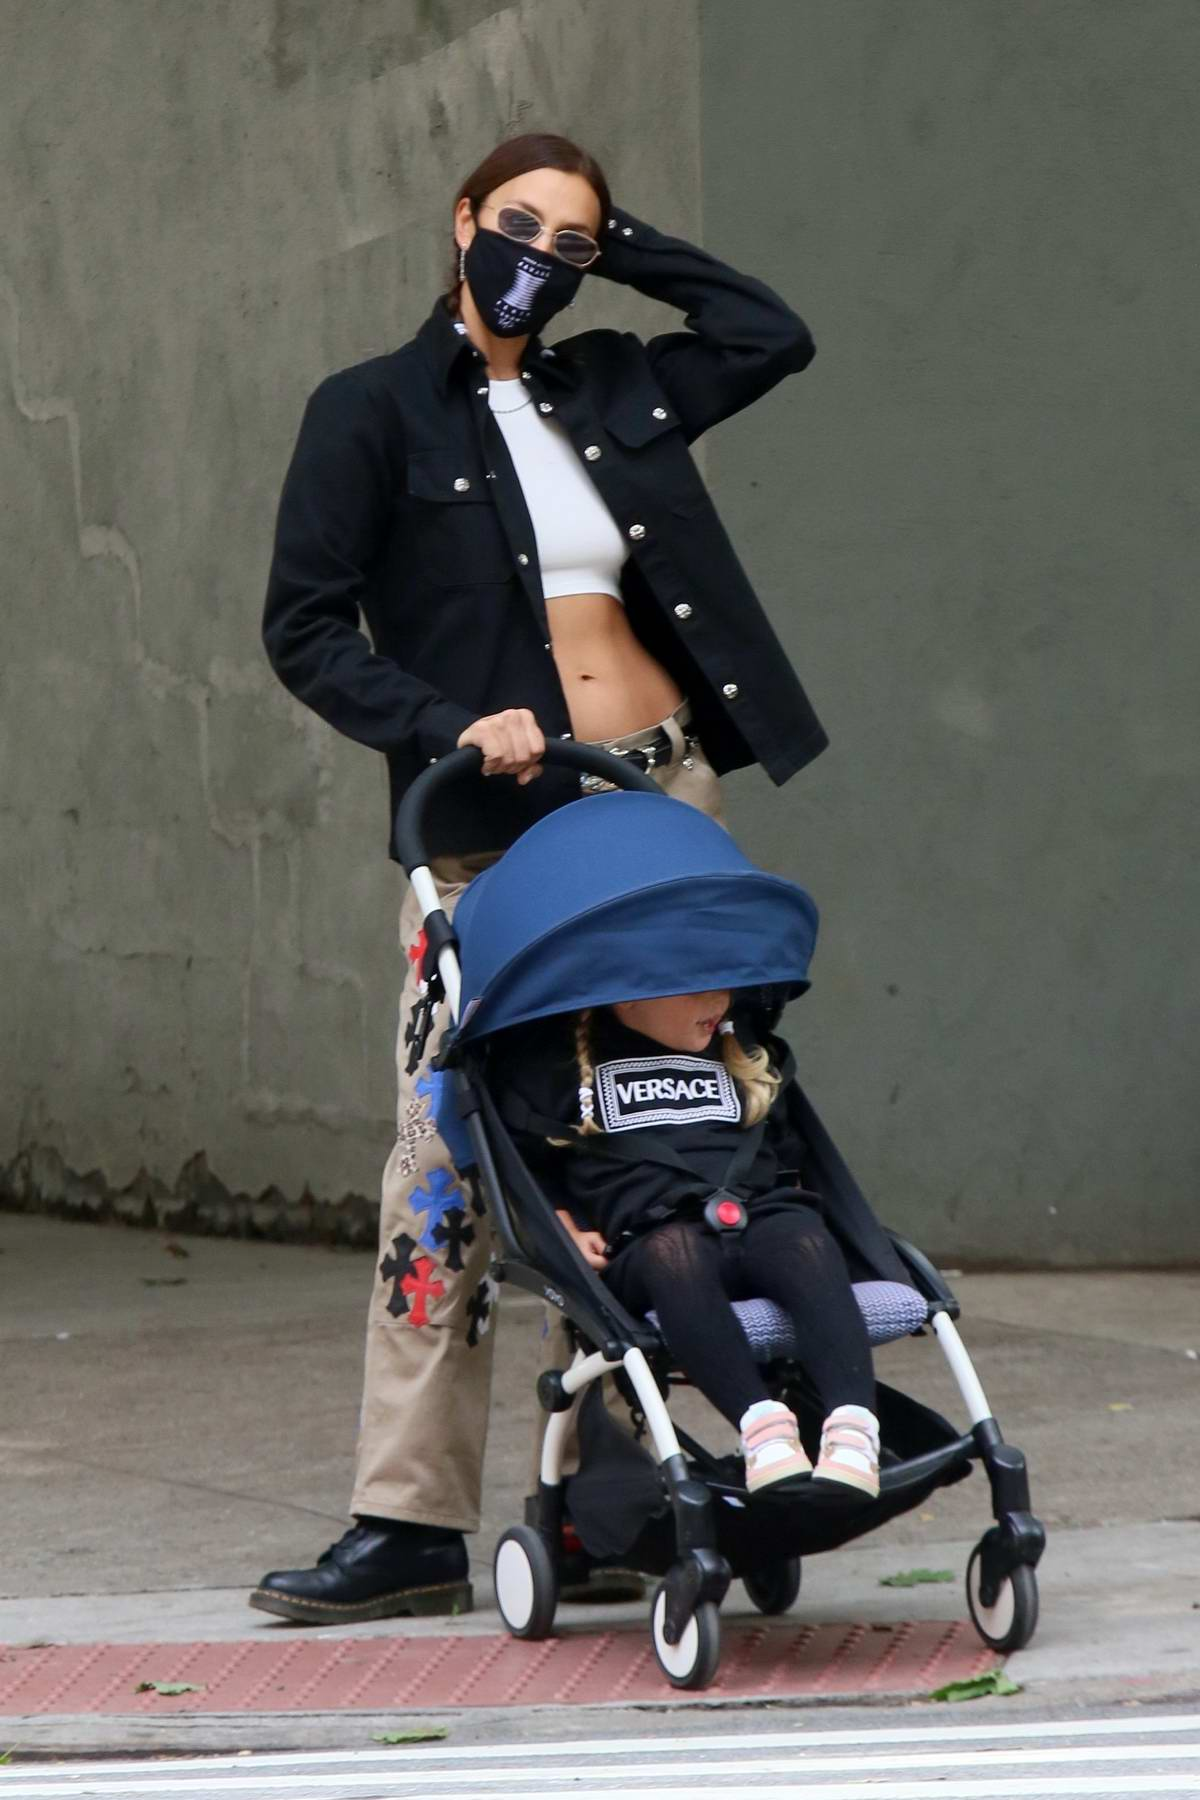 Irina Shayk dons a midriff baring crop top while out for a walk with her daughter around the neighborhood in New York City